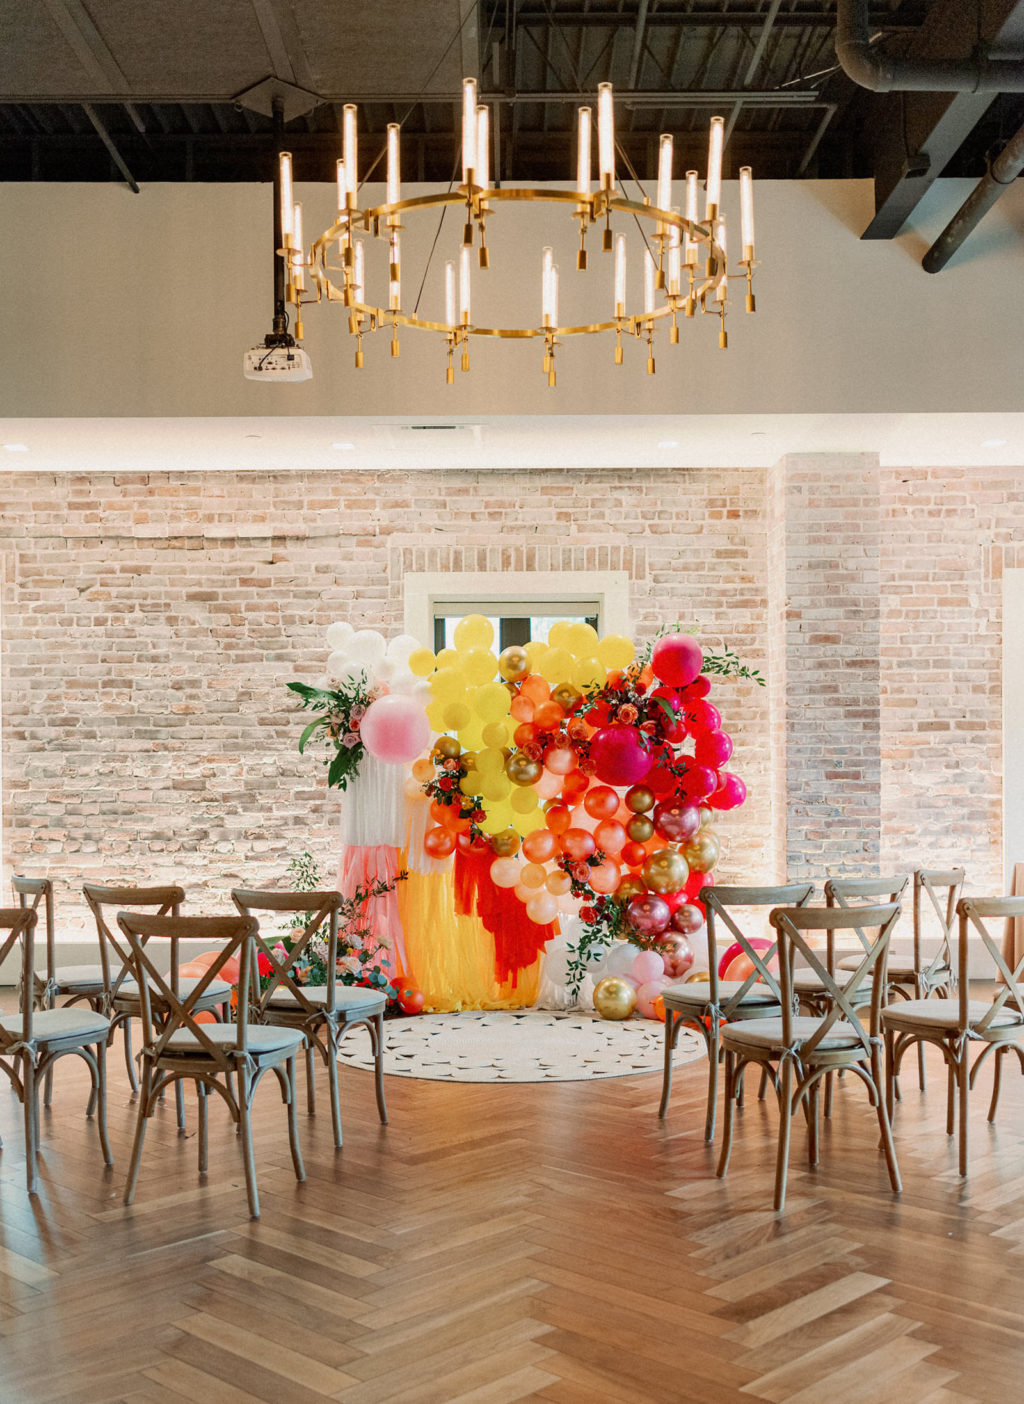 Colorful Whimsical Wedding Ceremony Decor, Wooden Cross Back Chairs, Yellow, Orange, Pink, Gold Balloon Fringe Ceremony Backdrop | Downtown St Pete Modern Industrial Chic Wedding Venue Red Mesa Events | Tampa Bay Wedding Photographer Dewitt for Love | Wedding Chair Rentals Kate Ryan Event Rentals